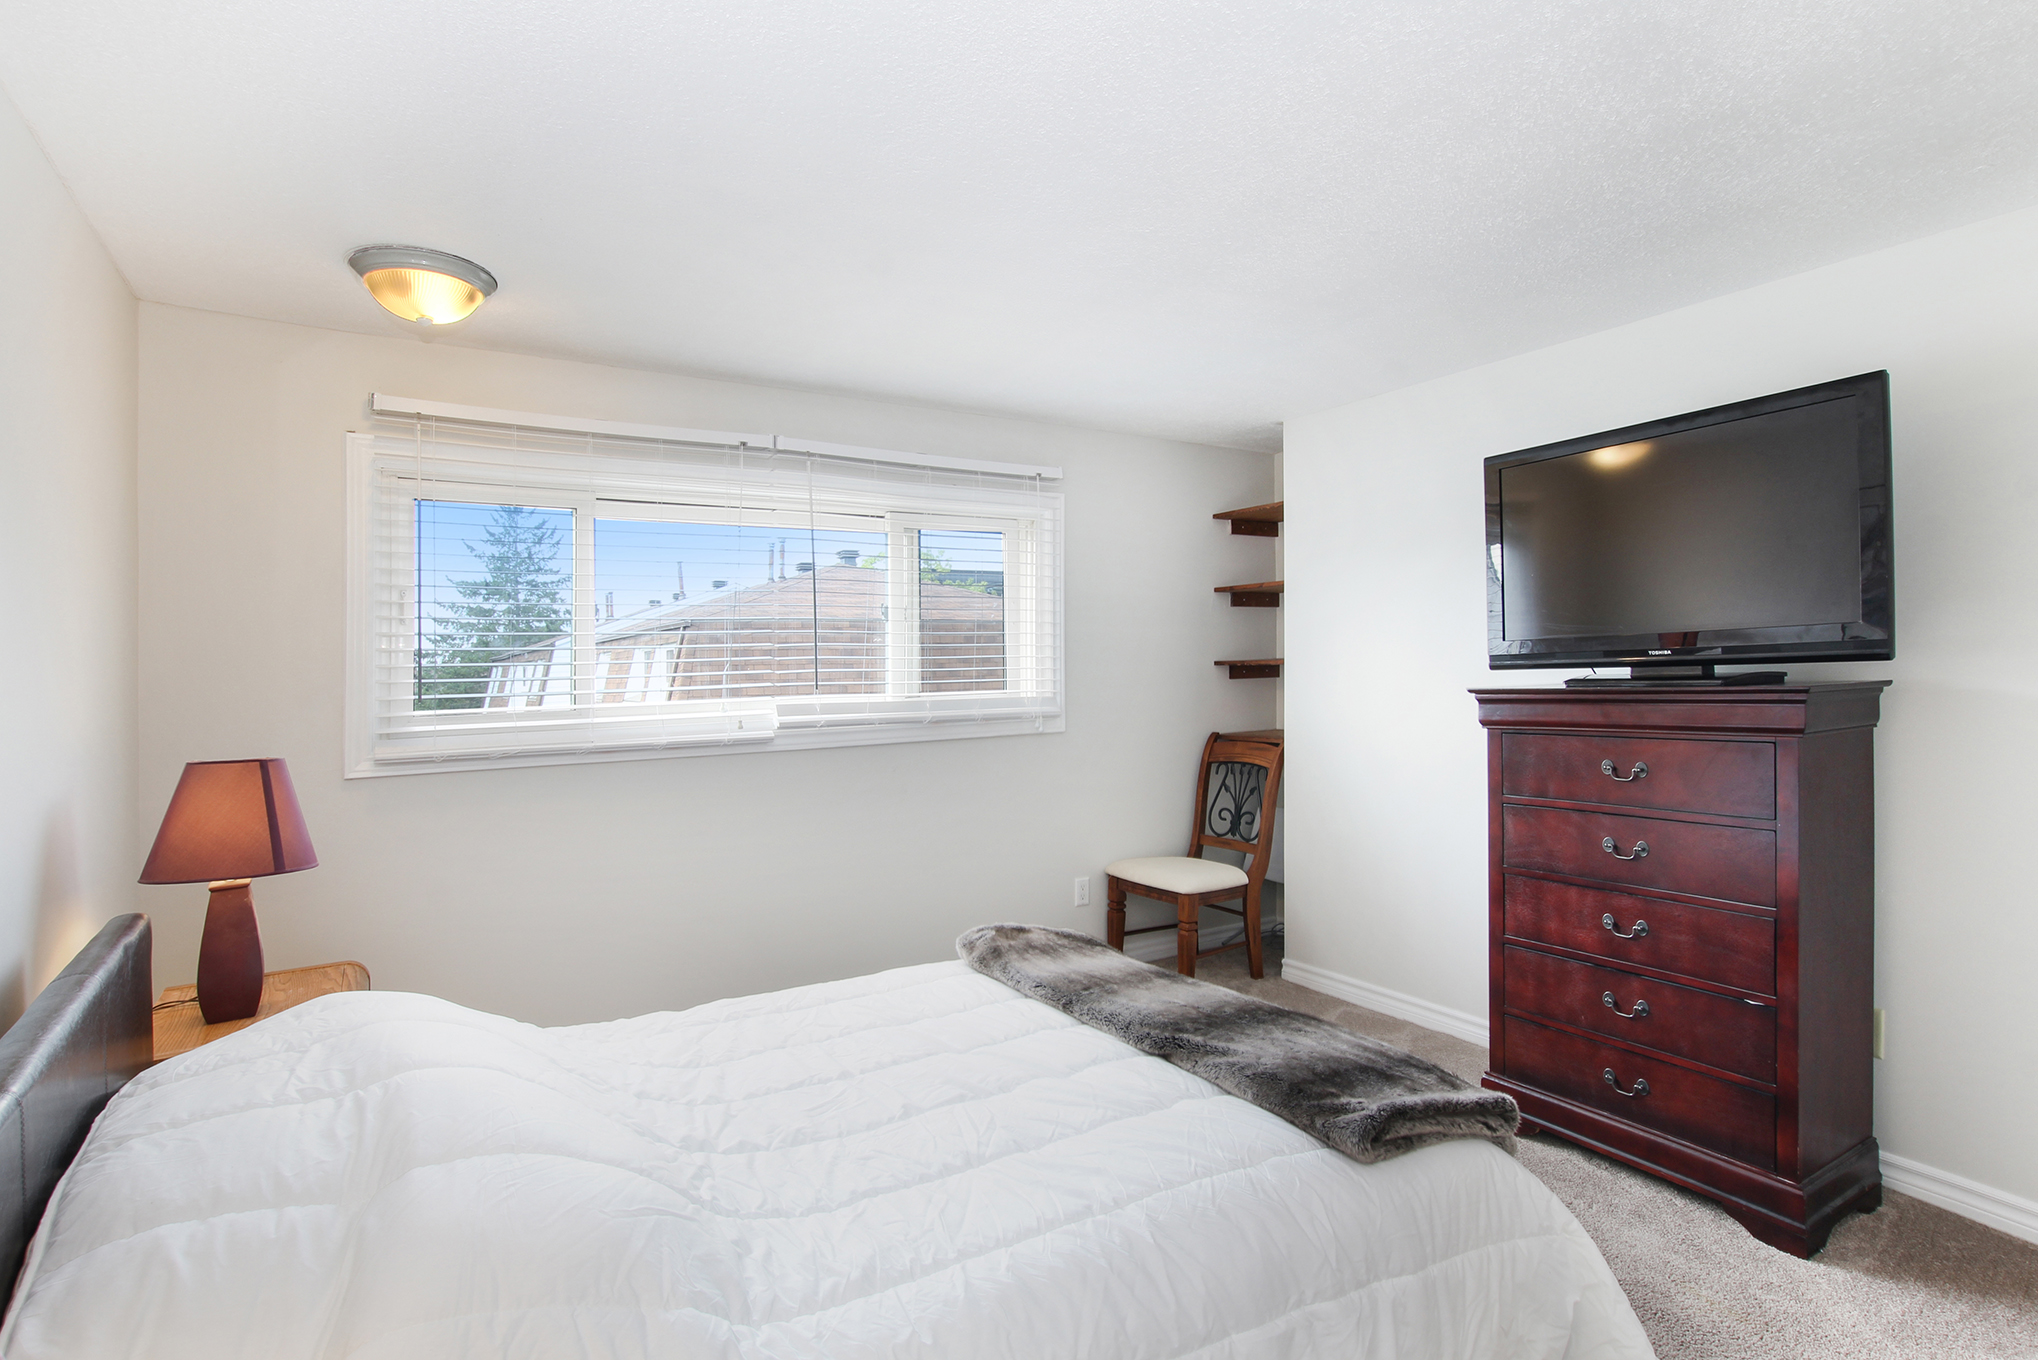 Spacious Master Bedroom, plush carpeting, Large window allowing for lots of natural light.